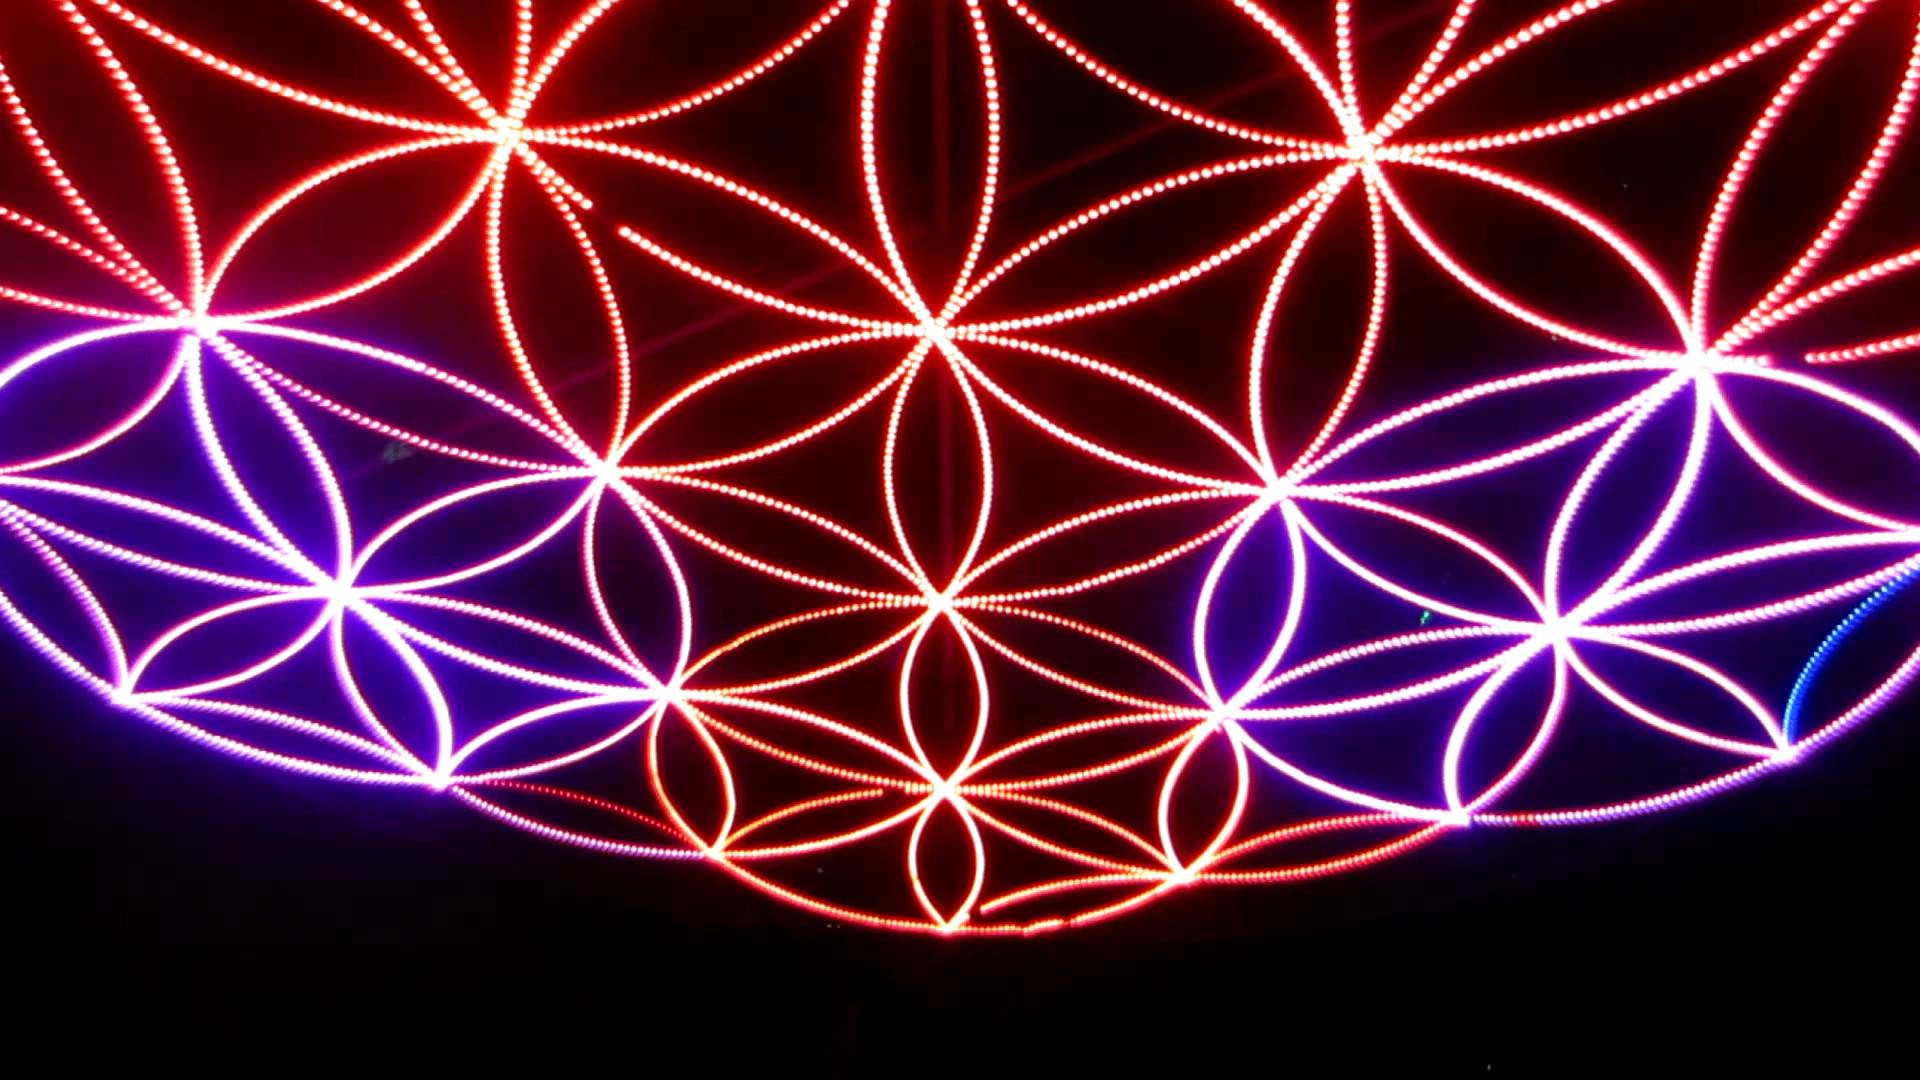 Flower of Life Art at Enchanted Forest Festival